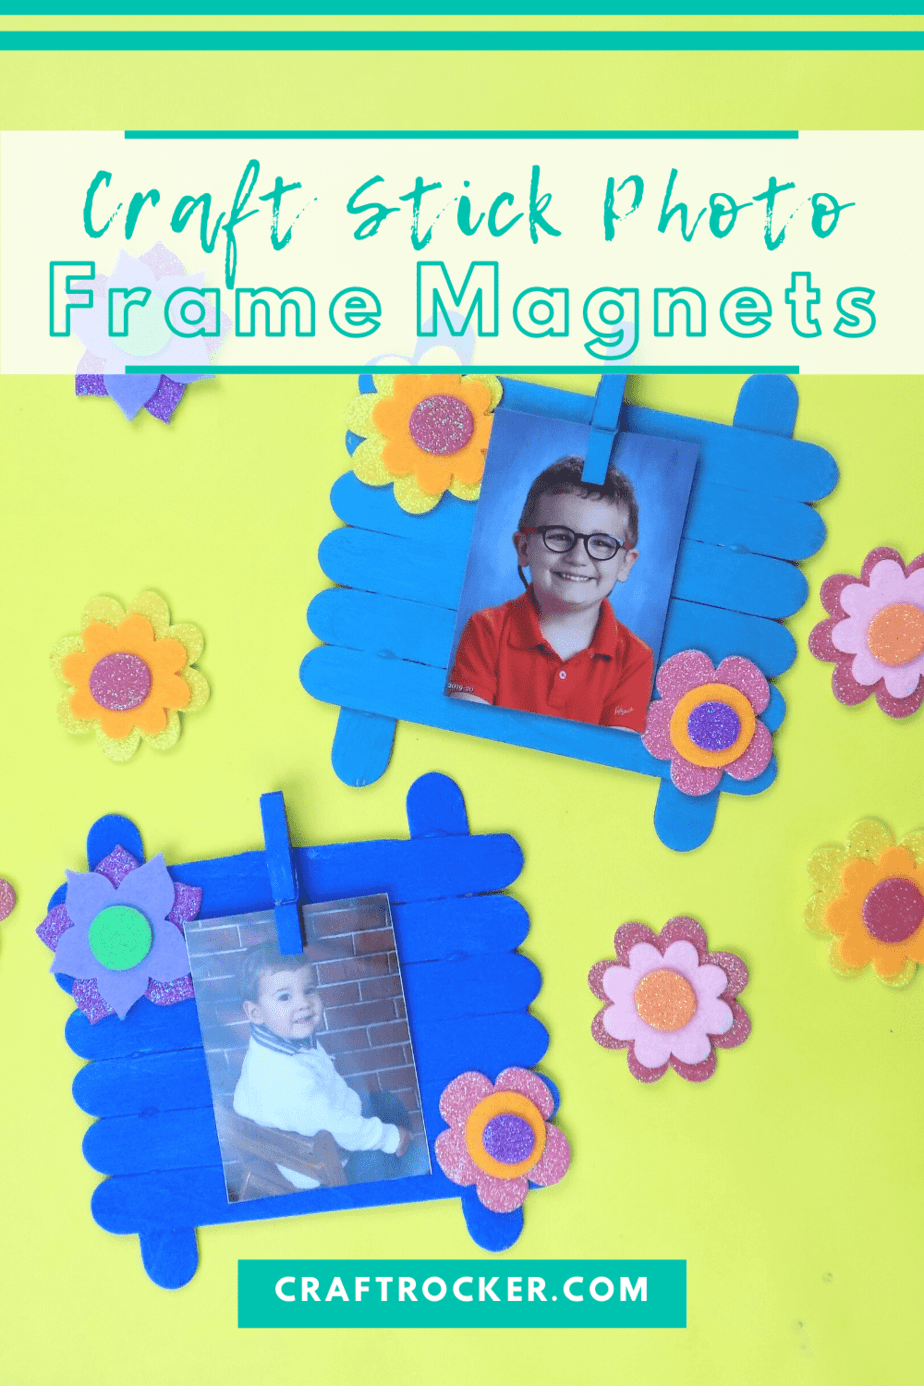 Blue Floral Craft Stick Frames with text overlay - Craft Stick Photo Frame Magnets - Craft Rocker